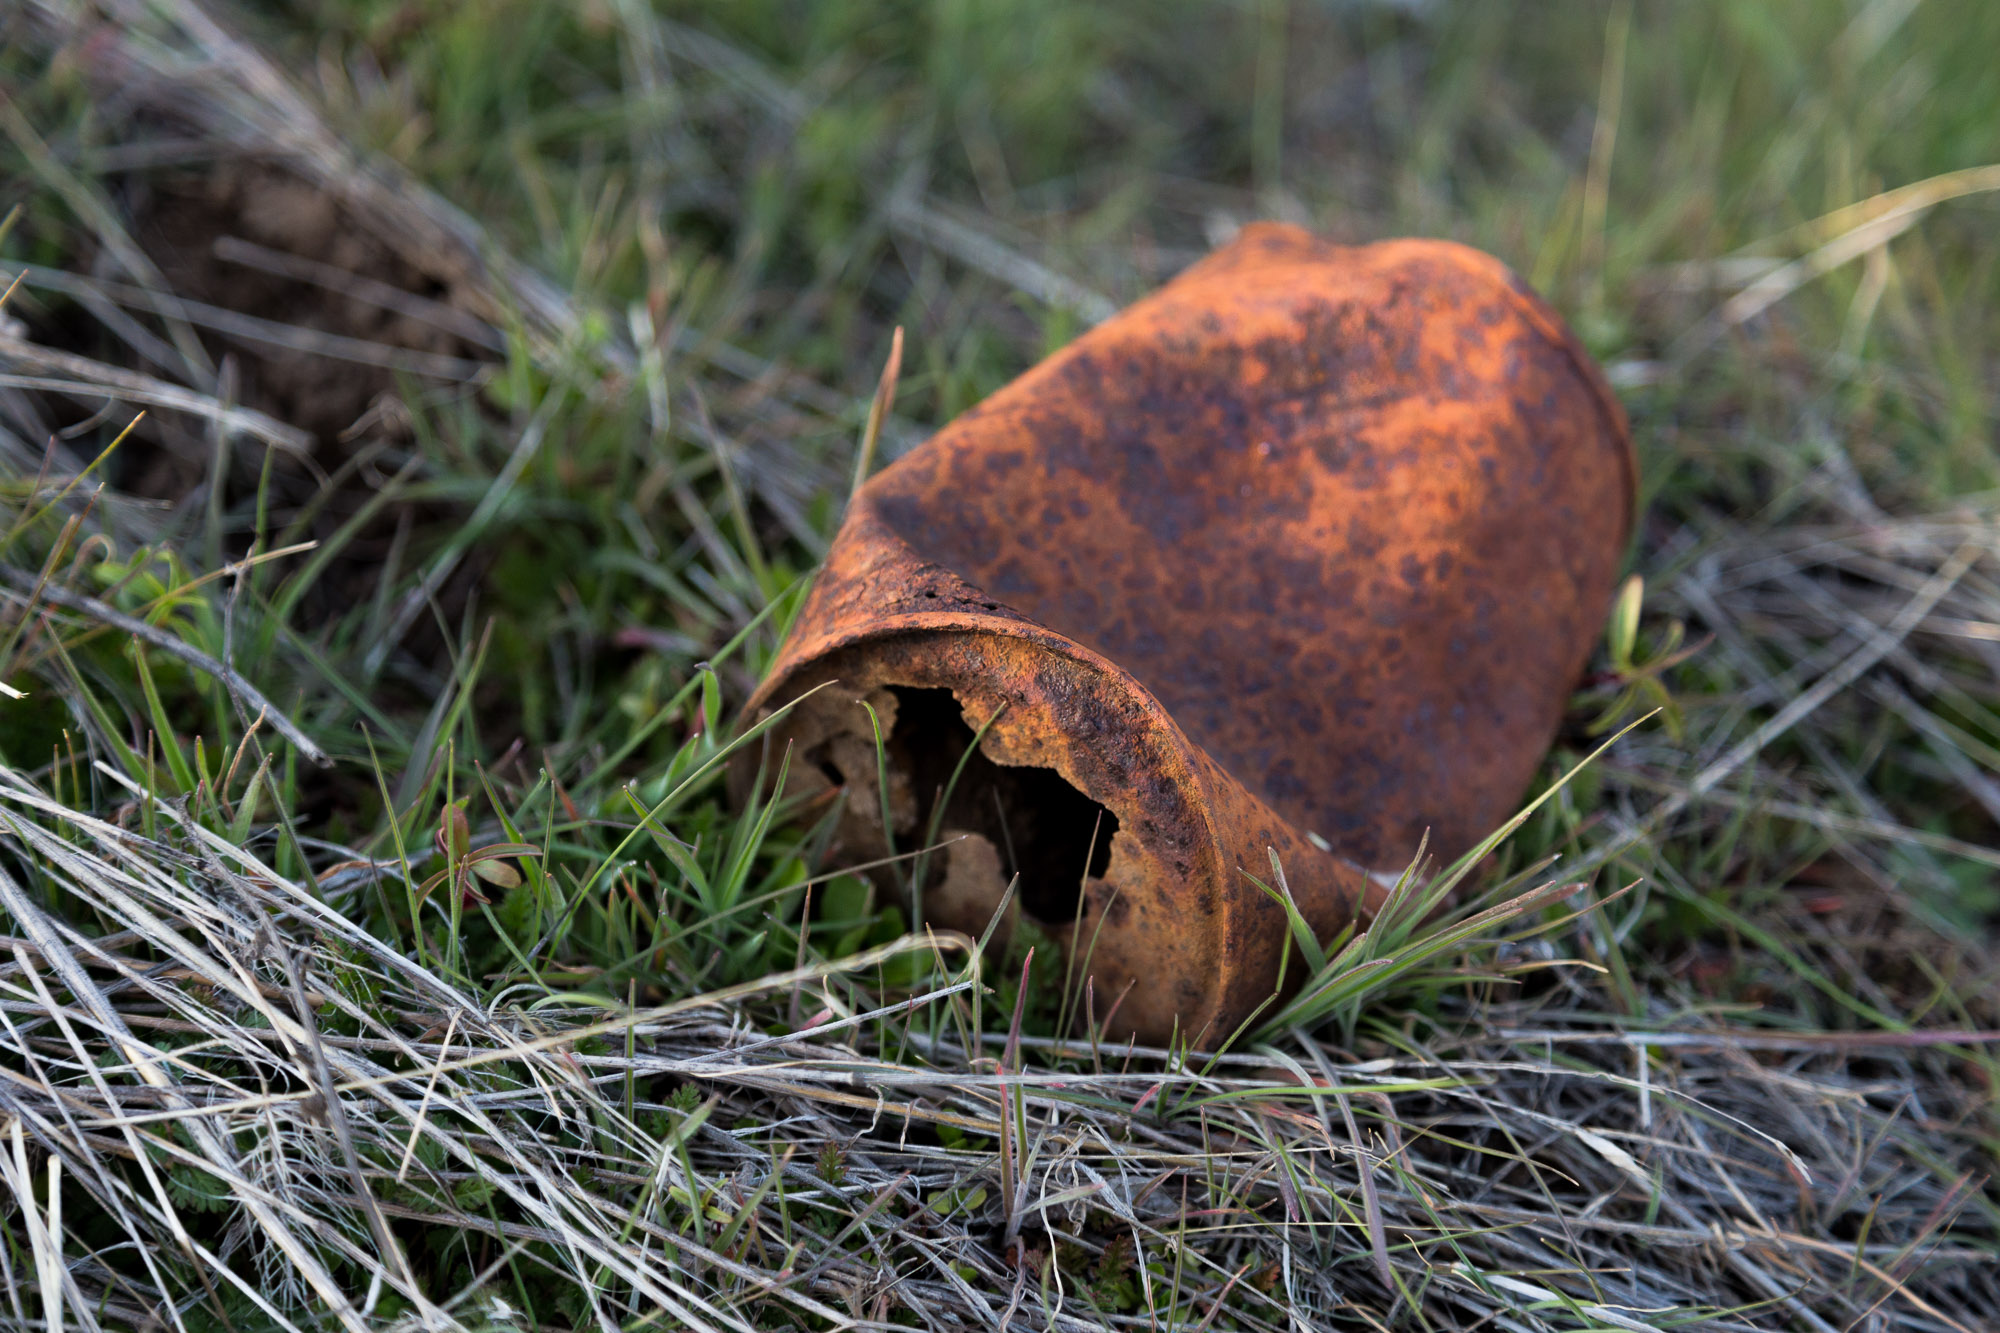 Old Rusty Can